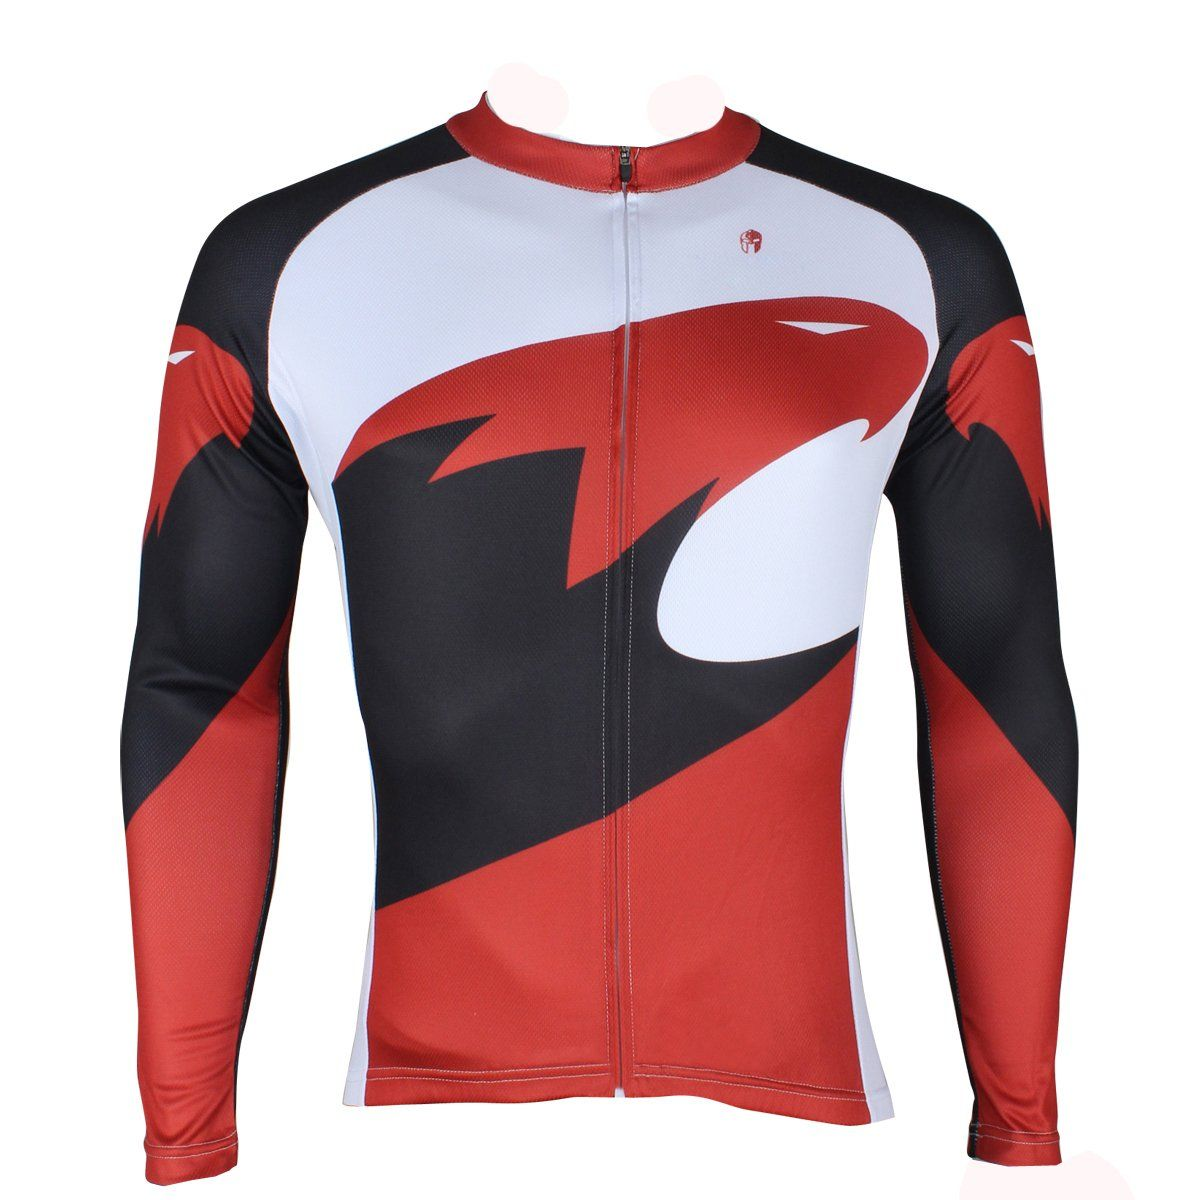 Hot Sale Outdoor Cycling Clothing White and Red Cycling Jersey Wholesale  Men s Long-sleeved Jersey for Spring and Summer Red 9207f000c